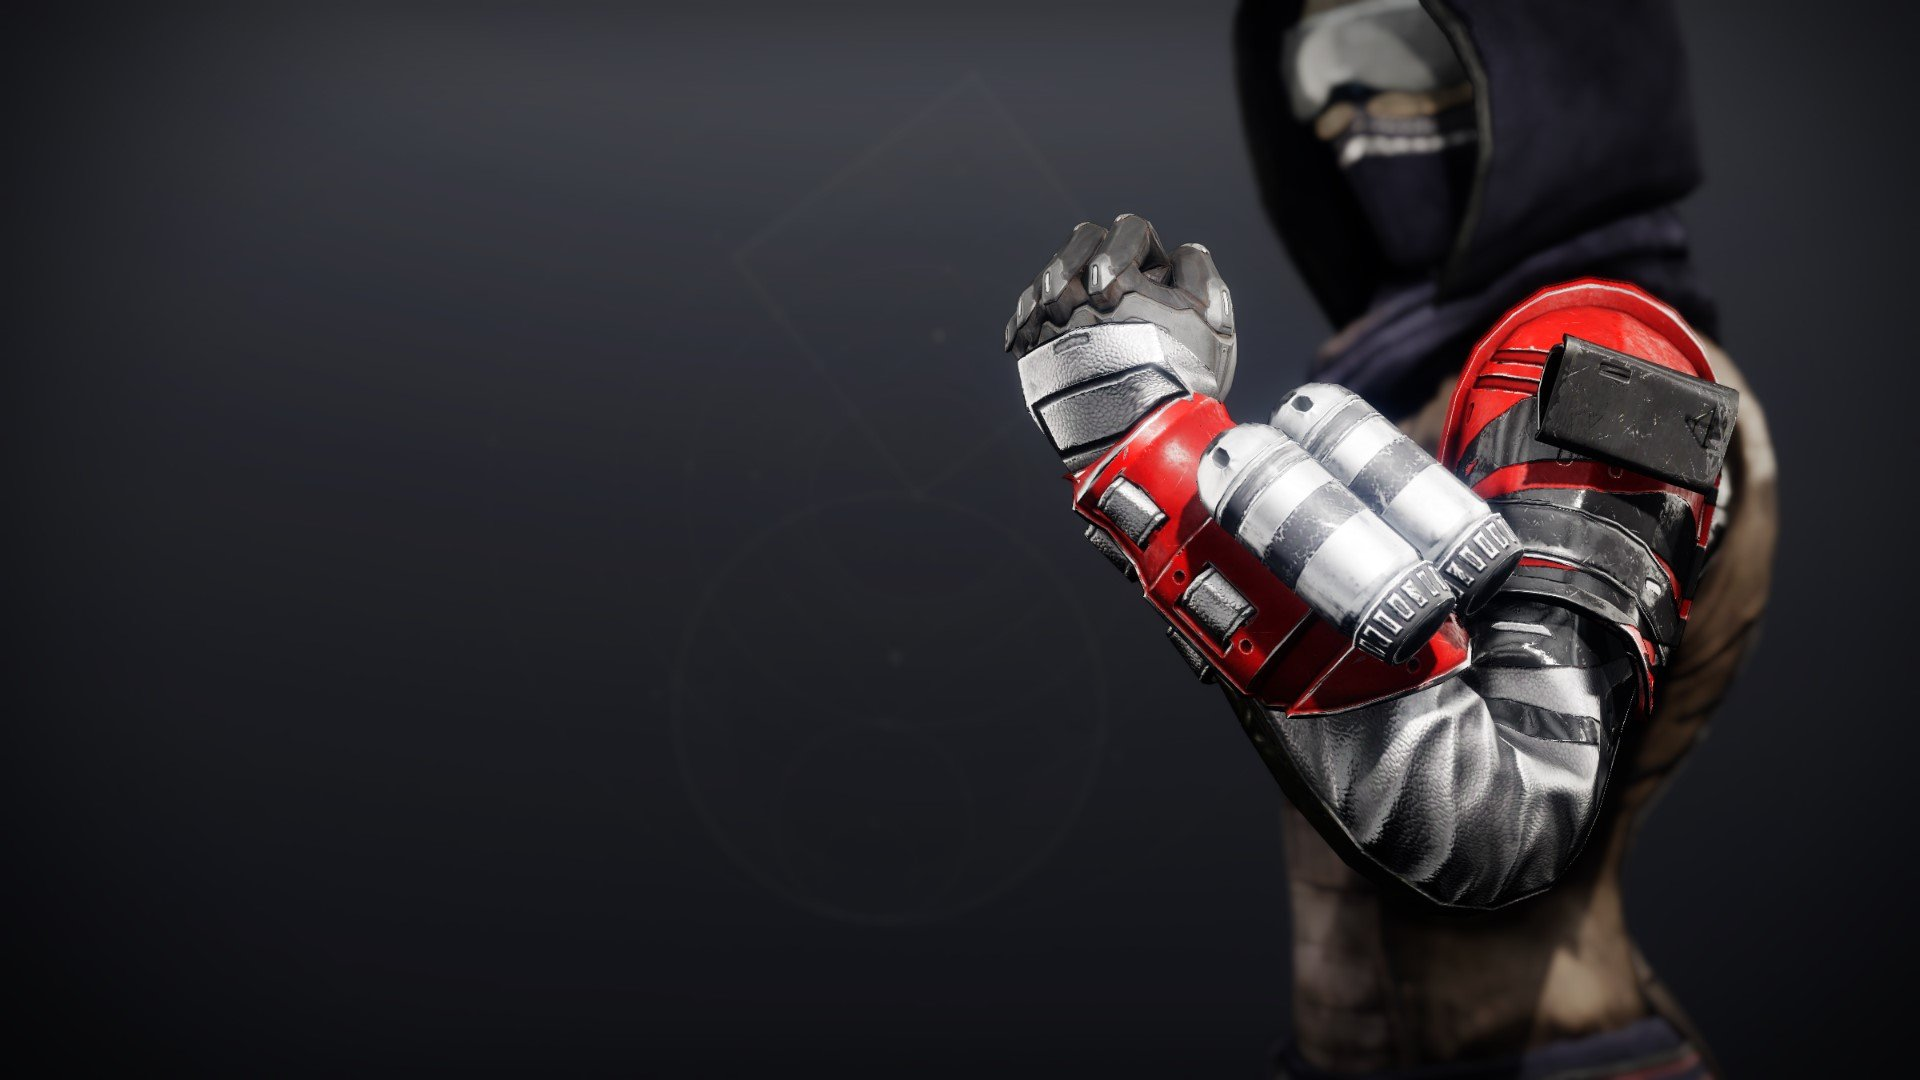 An in-game render of the Cinder Pinion Grasps.